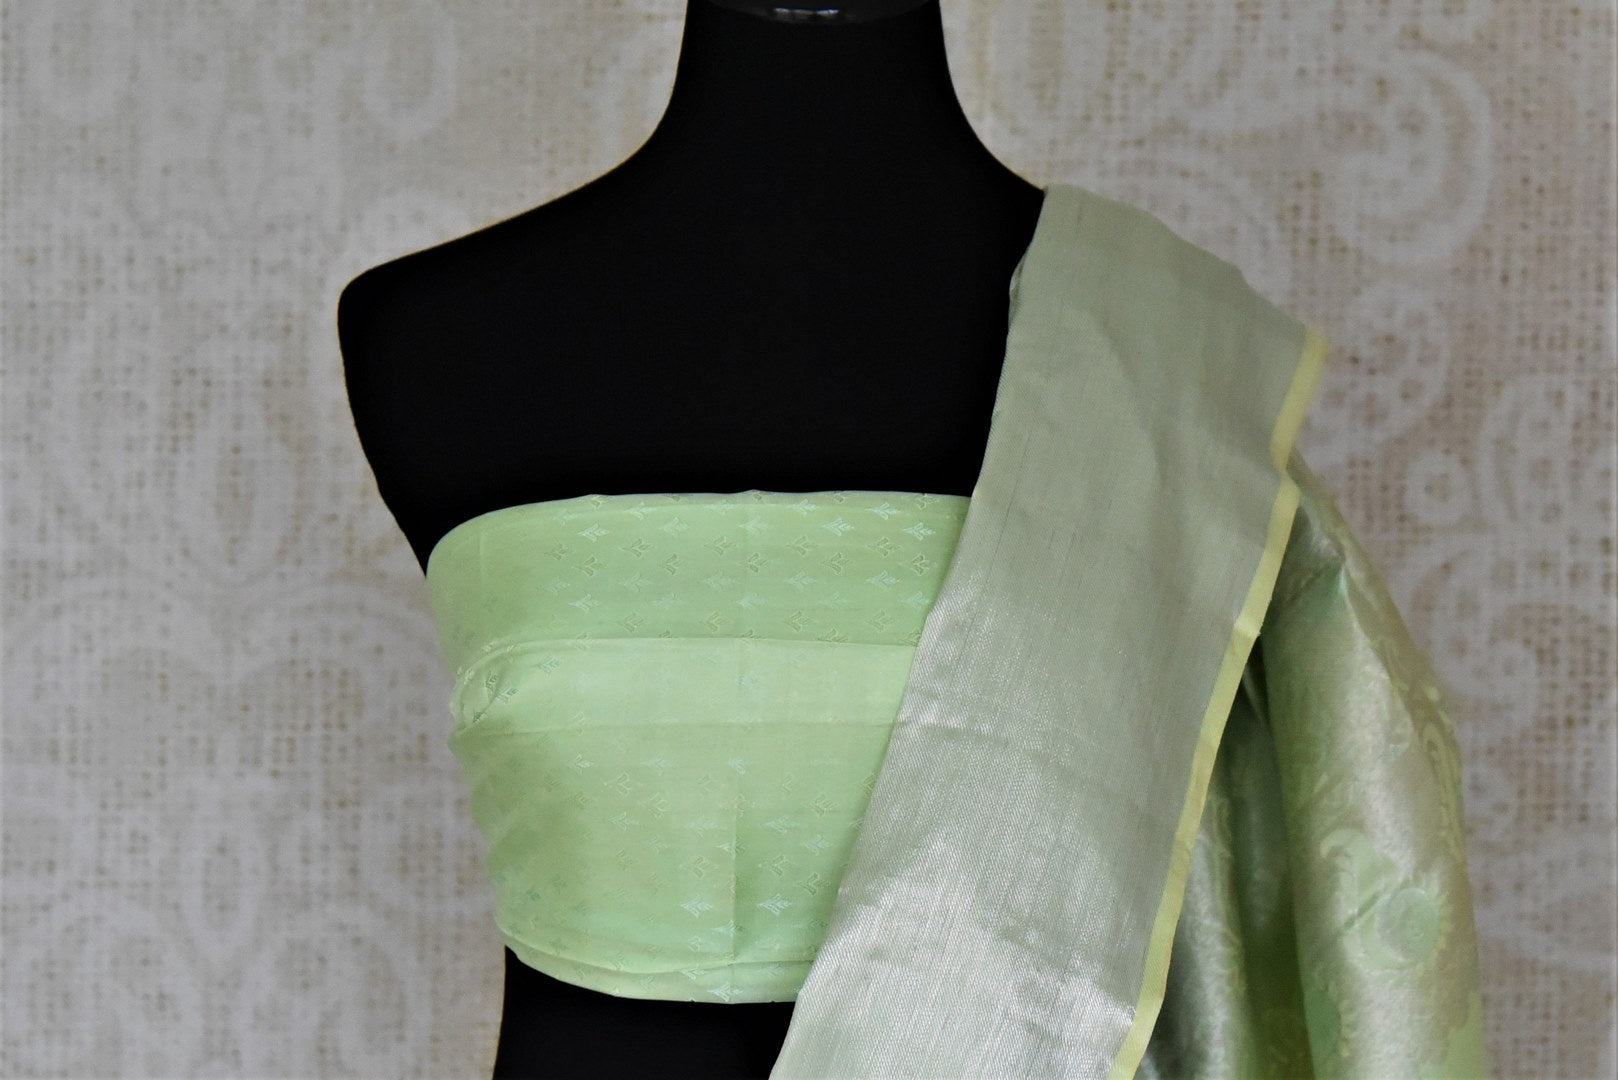 Buy beautiful pastel green silver zari work Kanchipuram saree online in USA. Make a beautiful appearance on special occasions with exquisite Indian designer sarees, Kanchipuram silk saris, Bollywood sarees from Pure Elegance Indian fashion store in USA.-blouse pallu